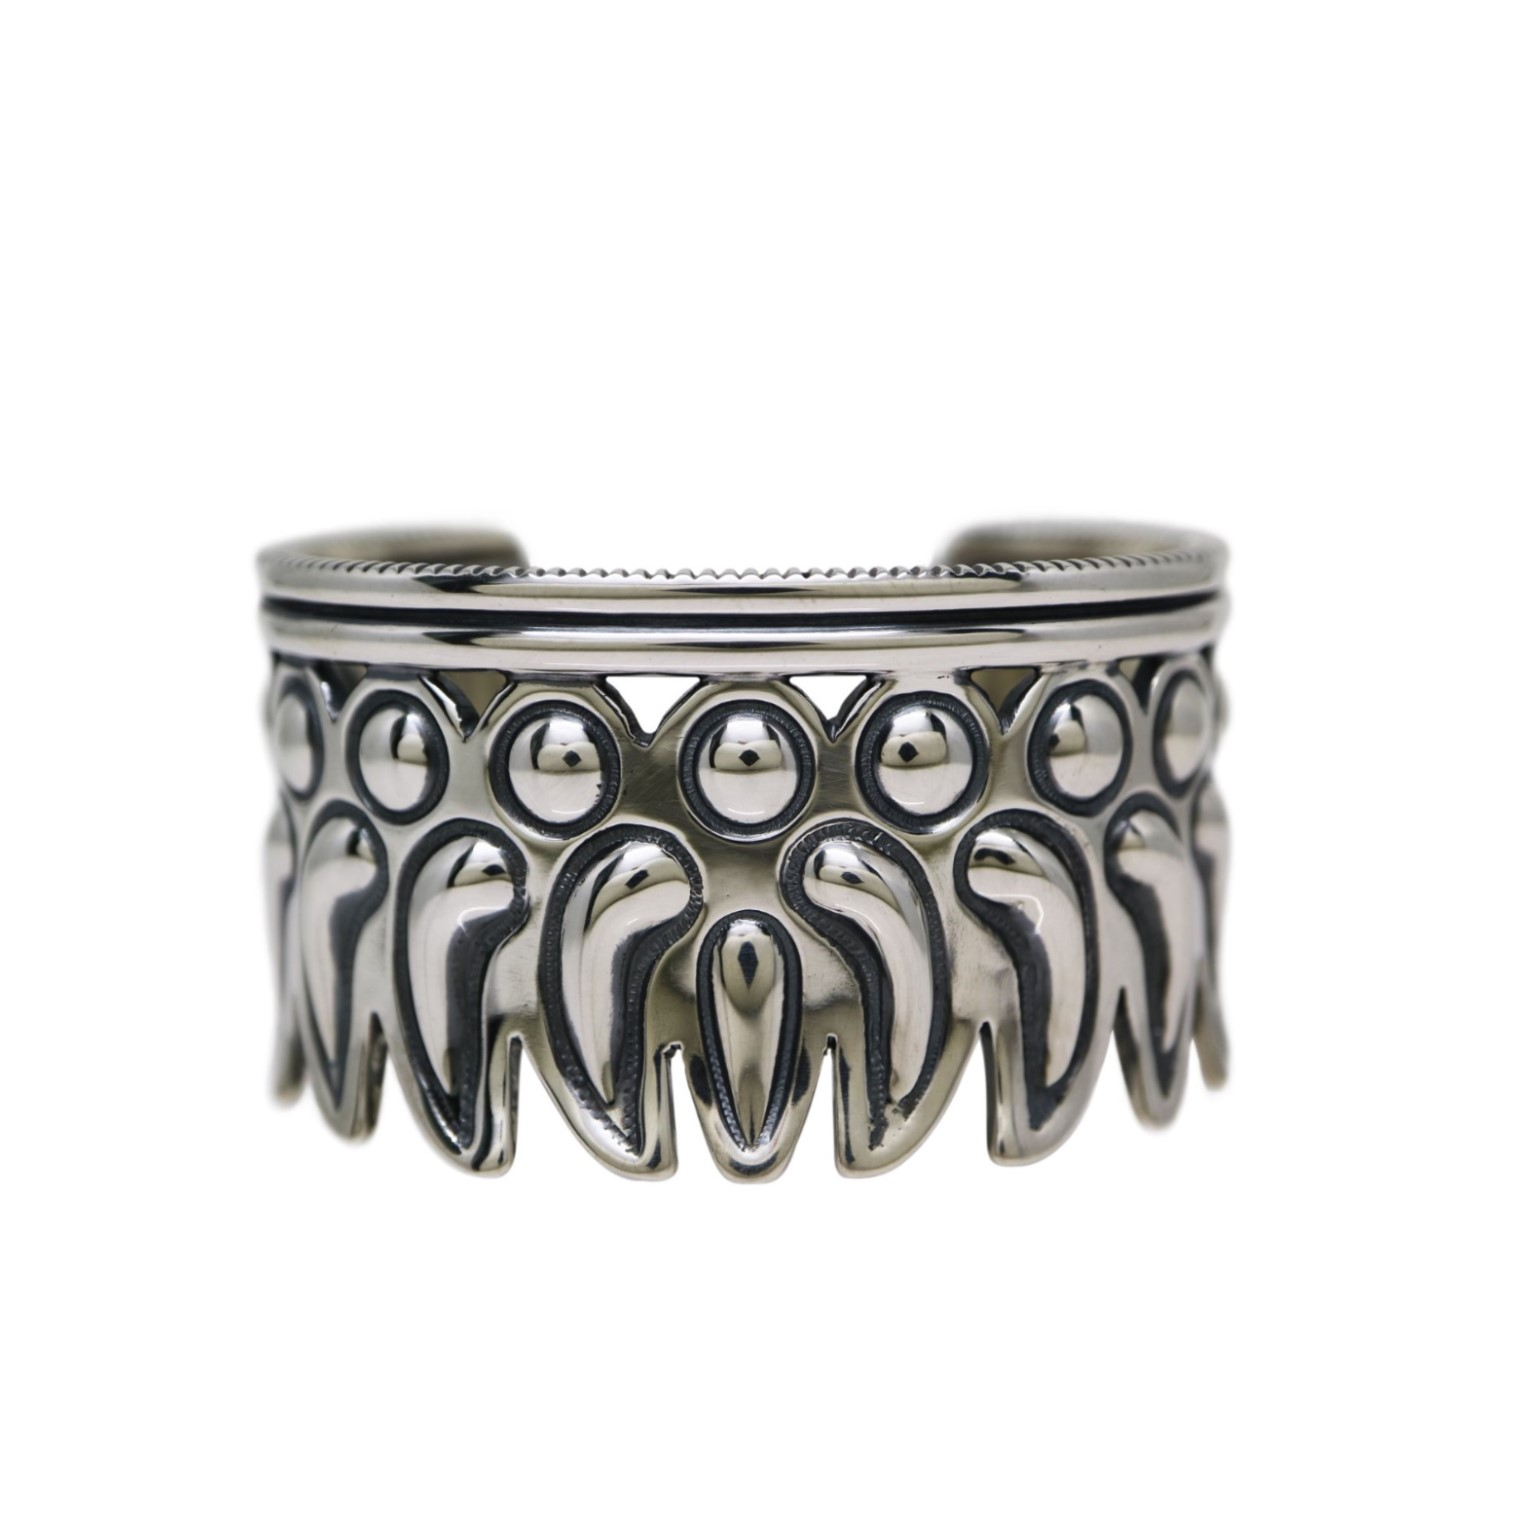 REPO FEATHER INWARD CUFF [USD $2700]